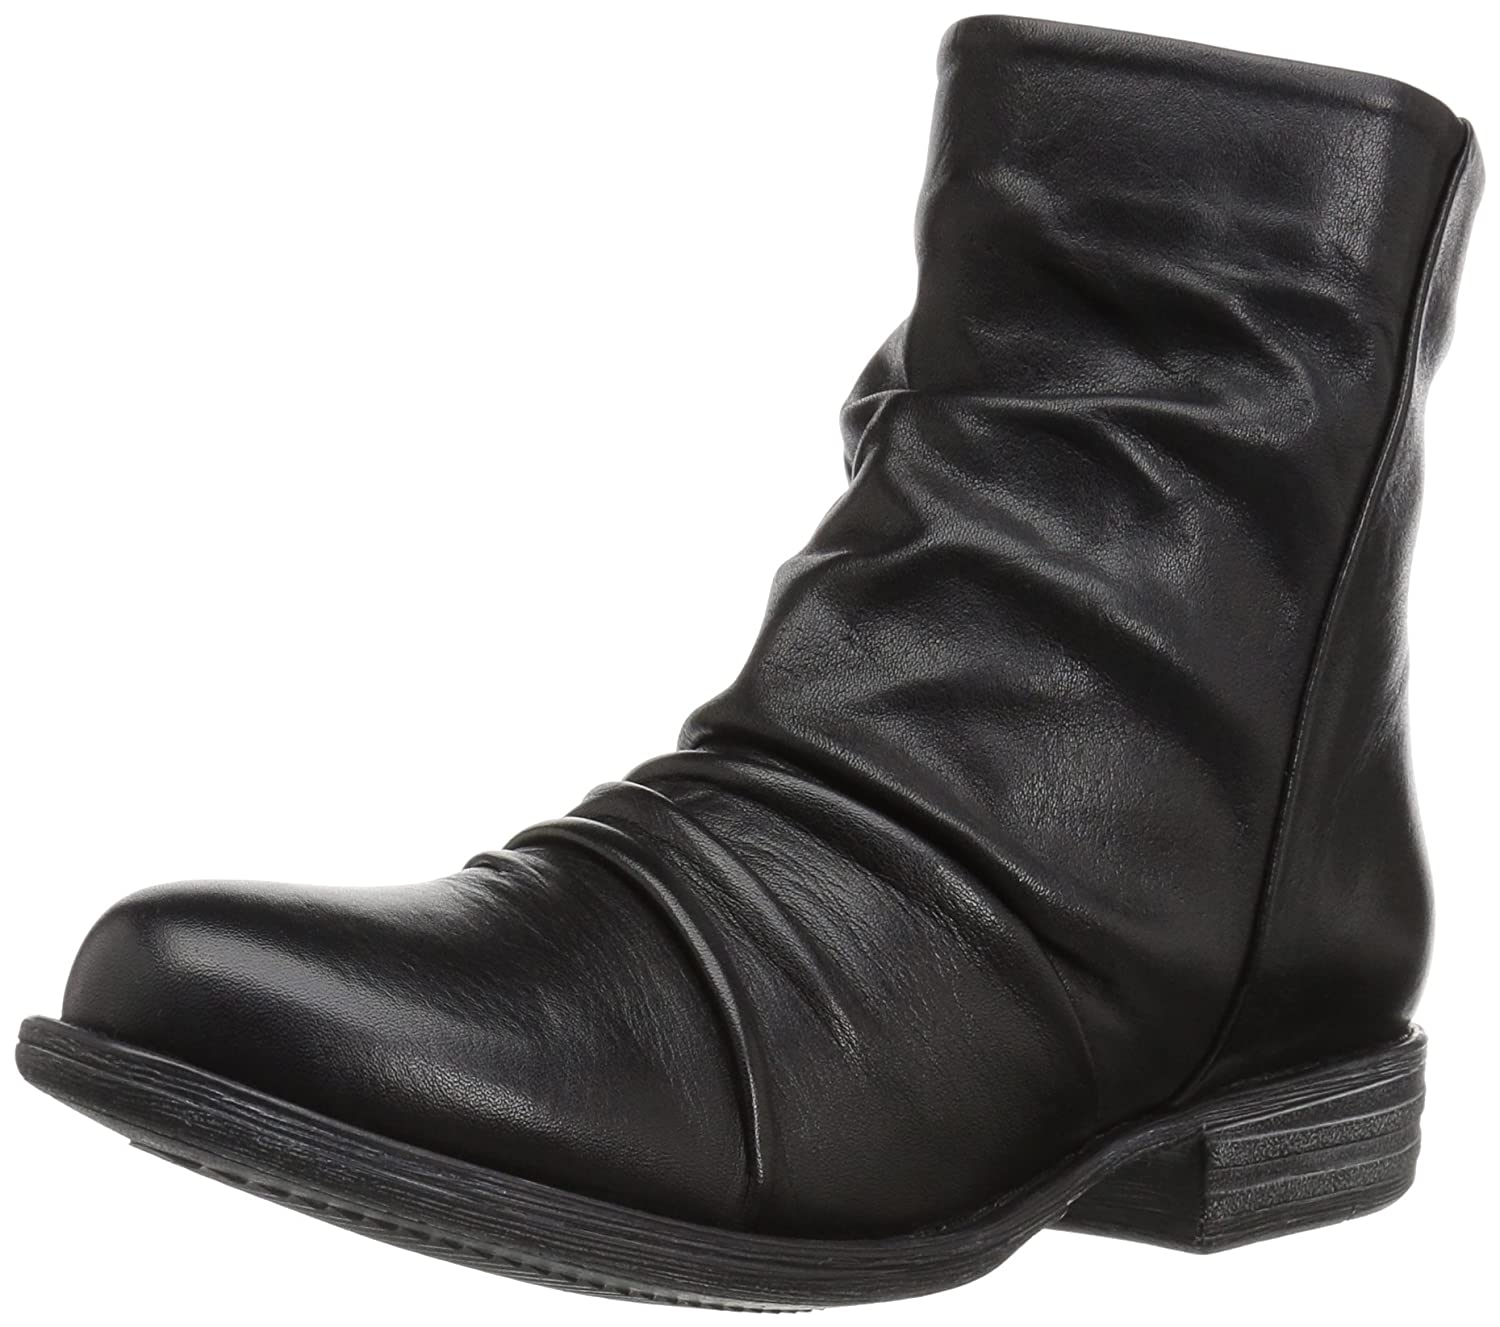 Miz Mooz Women's Lane Ankle Boot B06XP2B2HJ 6 B(M) US|Black